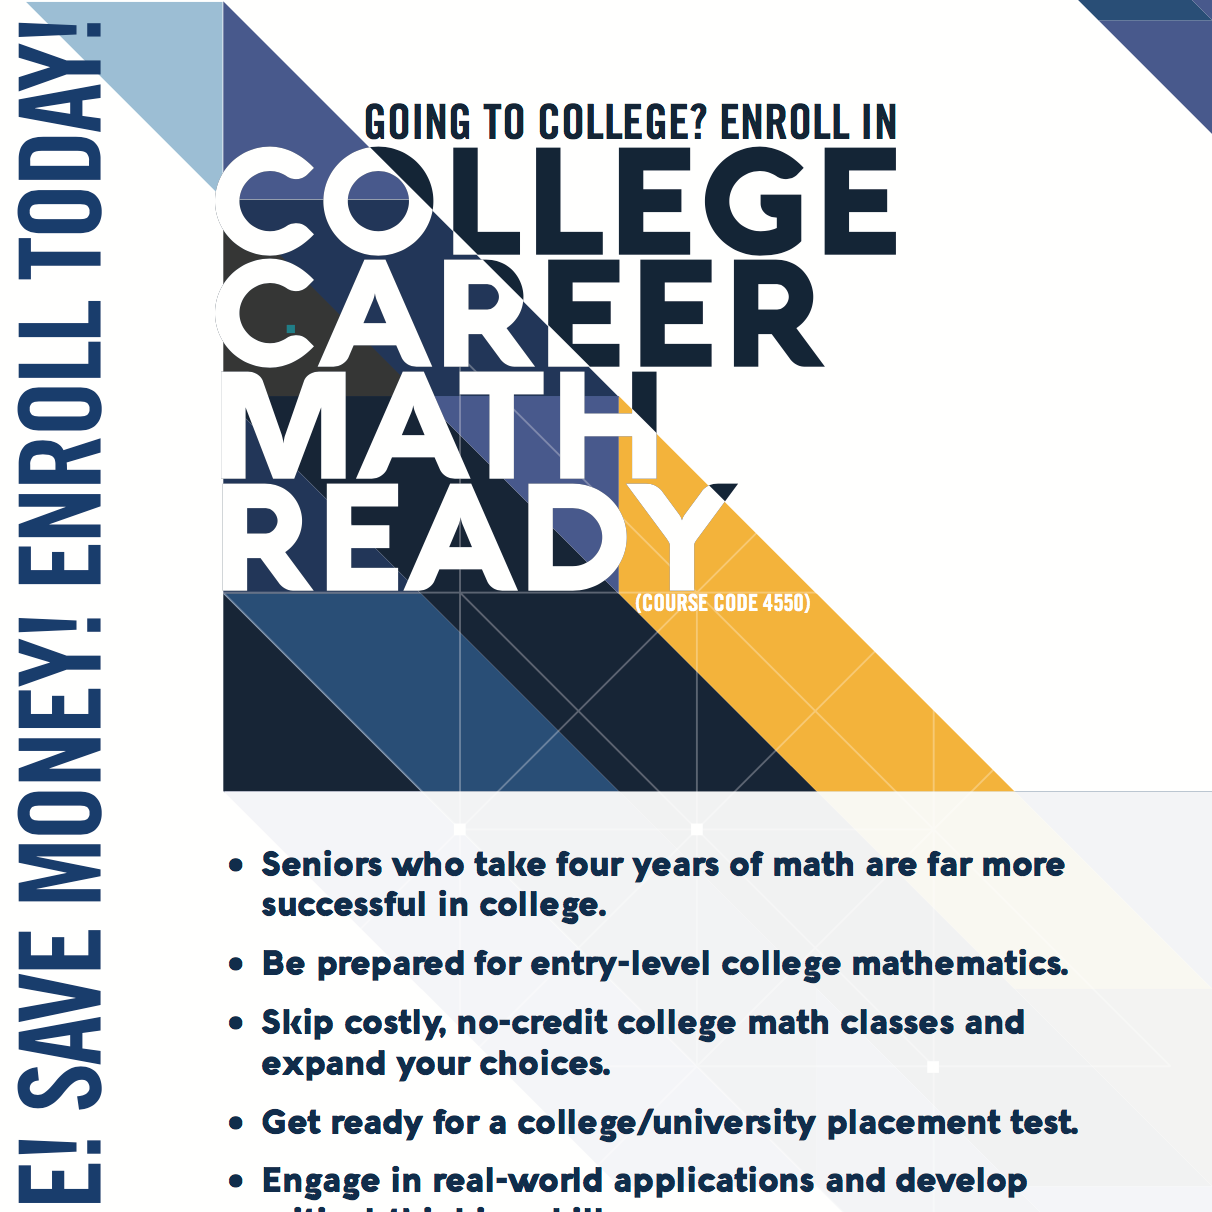 College career math ready oklahoma state department of education school poster xflitez Gallery